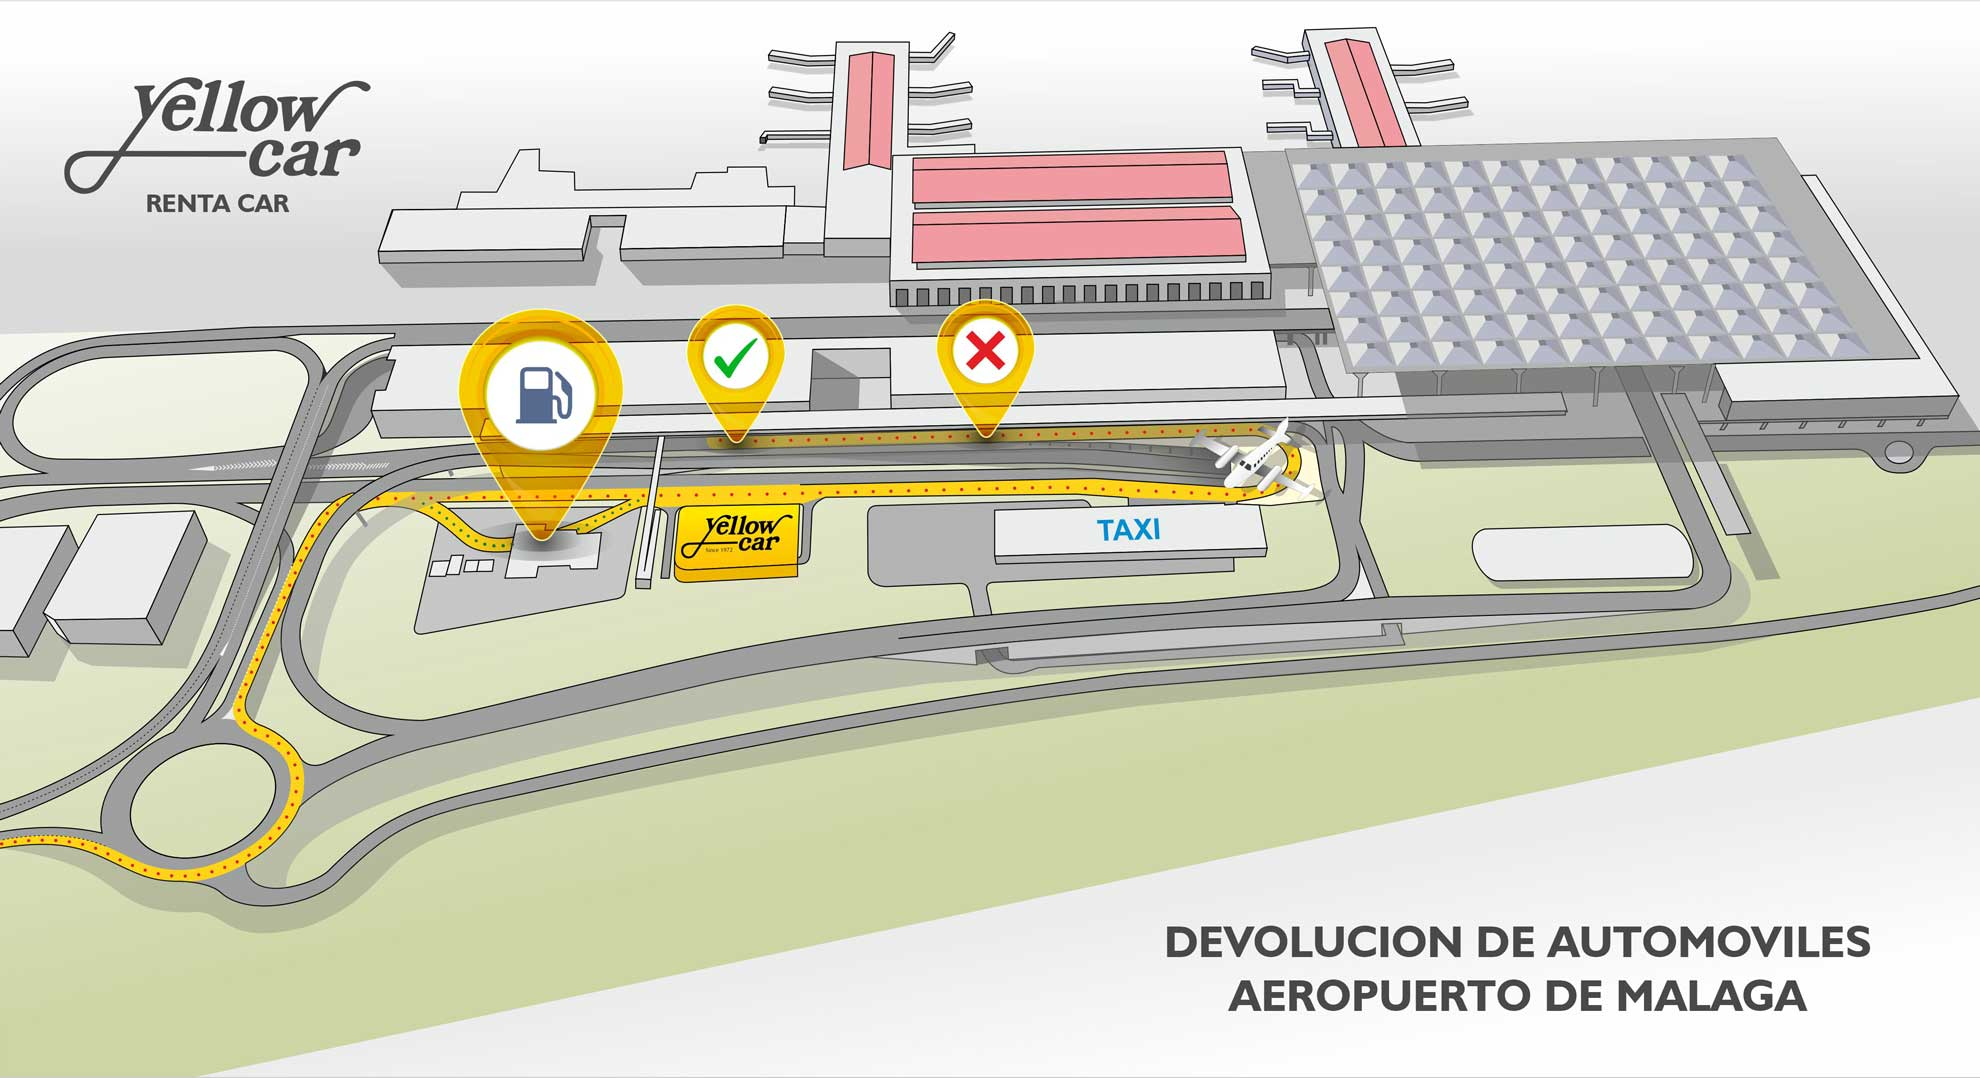 Malaga Airport services • Yellow Car - Rent a Car on map of tarifa, map of the m25, map of valencia, map of puerto banus, map of almeria, map of torremolinos, map of zurich train station, map of cordoba, map of cadiz, map of ibiza, map of burgos, map of granada, map of seville, map of tarragona, map of oviedo, map of madrid, map of lloret de mar, map of barcelona,